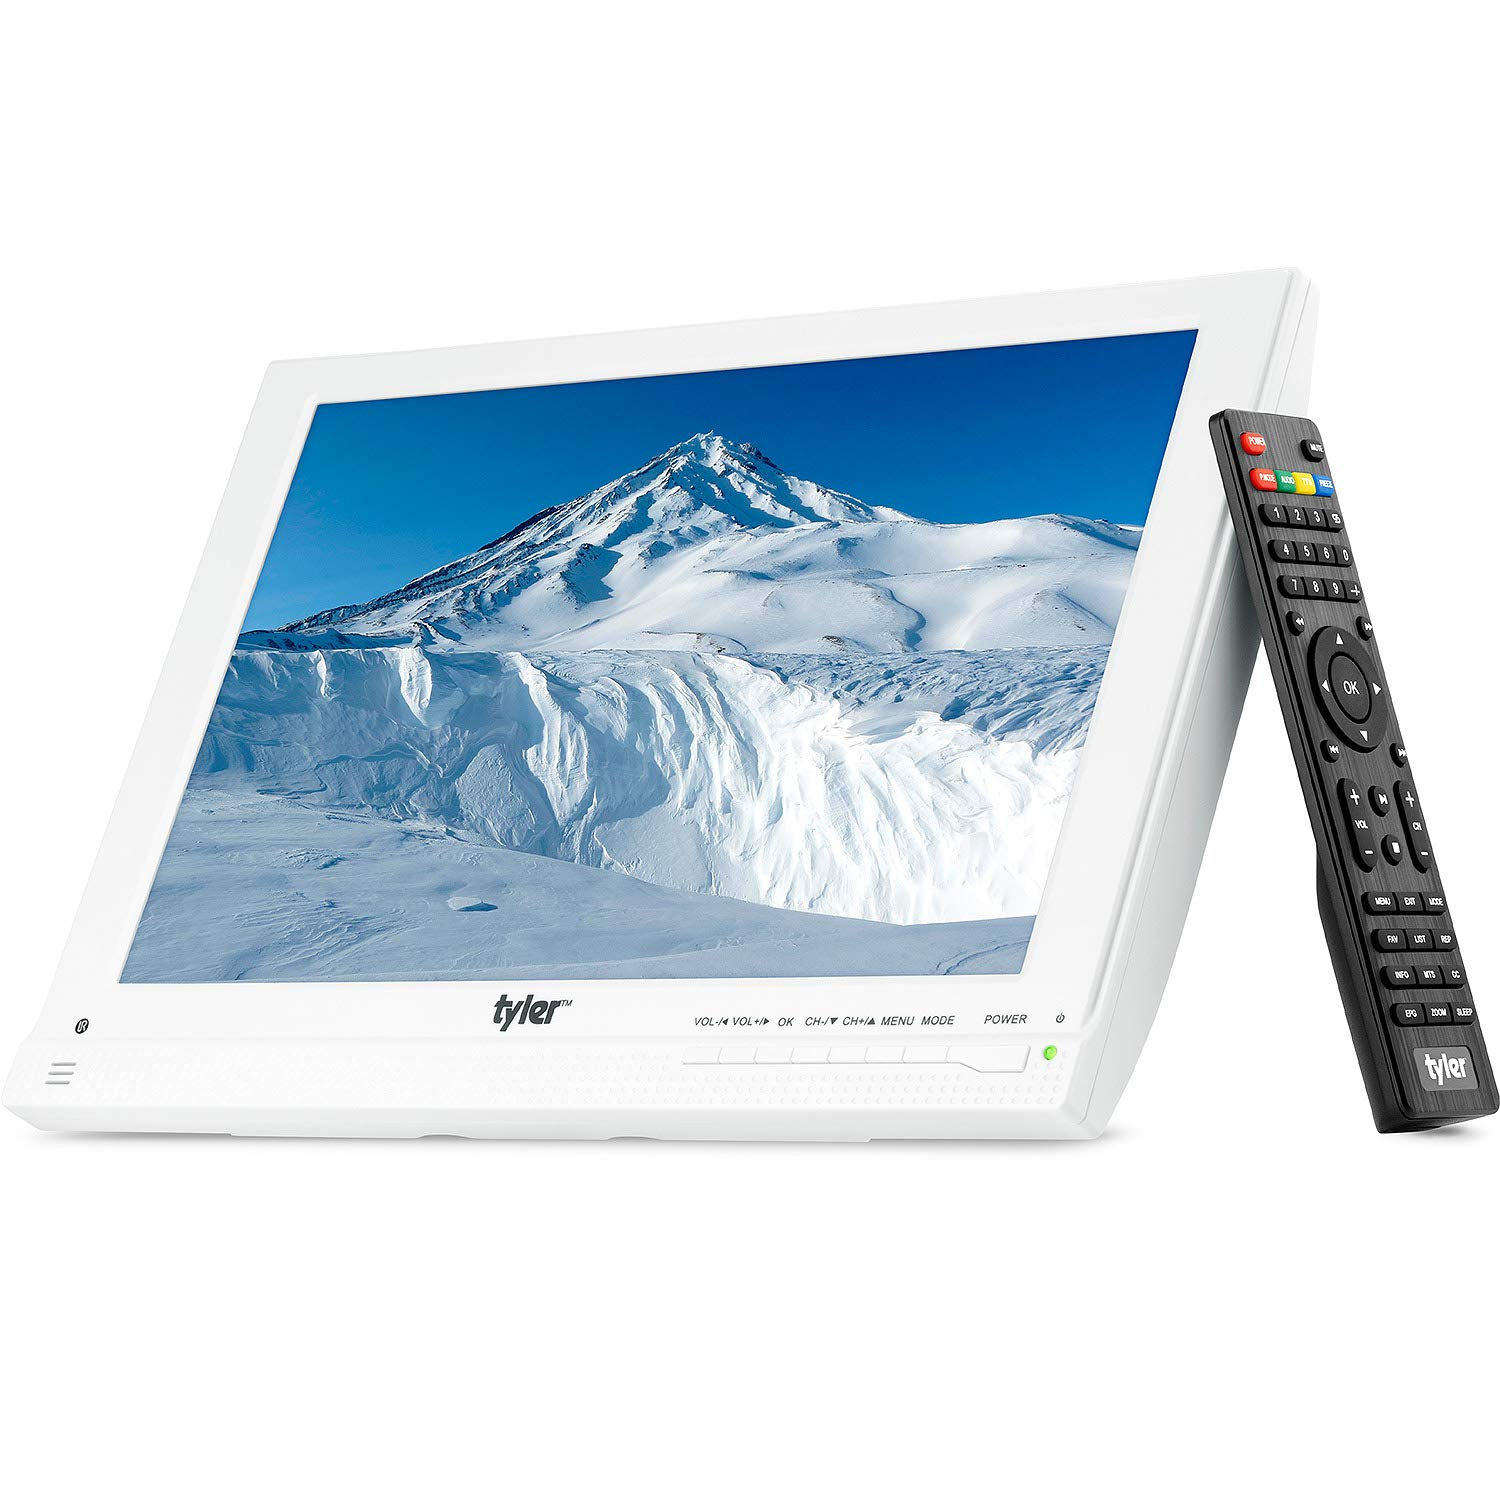 "Tyler TTV707-13 13.3"" Portable Battery Powered LCD HD TV Television with HDMI, USB, RCA, and SD Card Inputs 